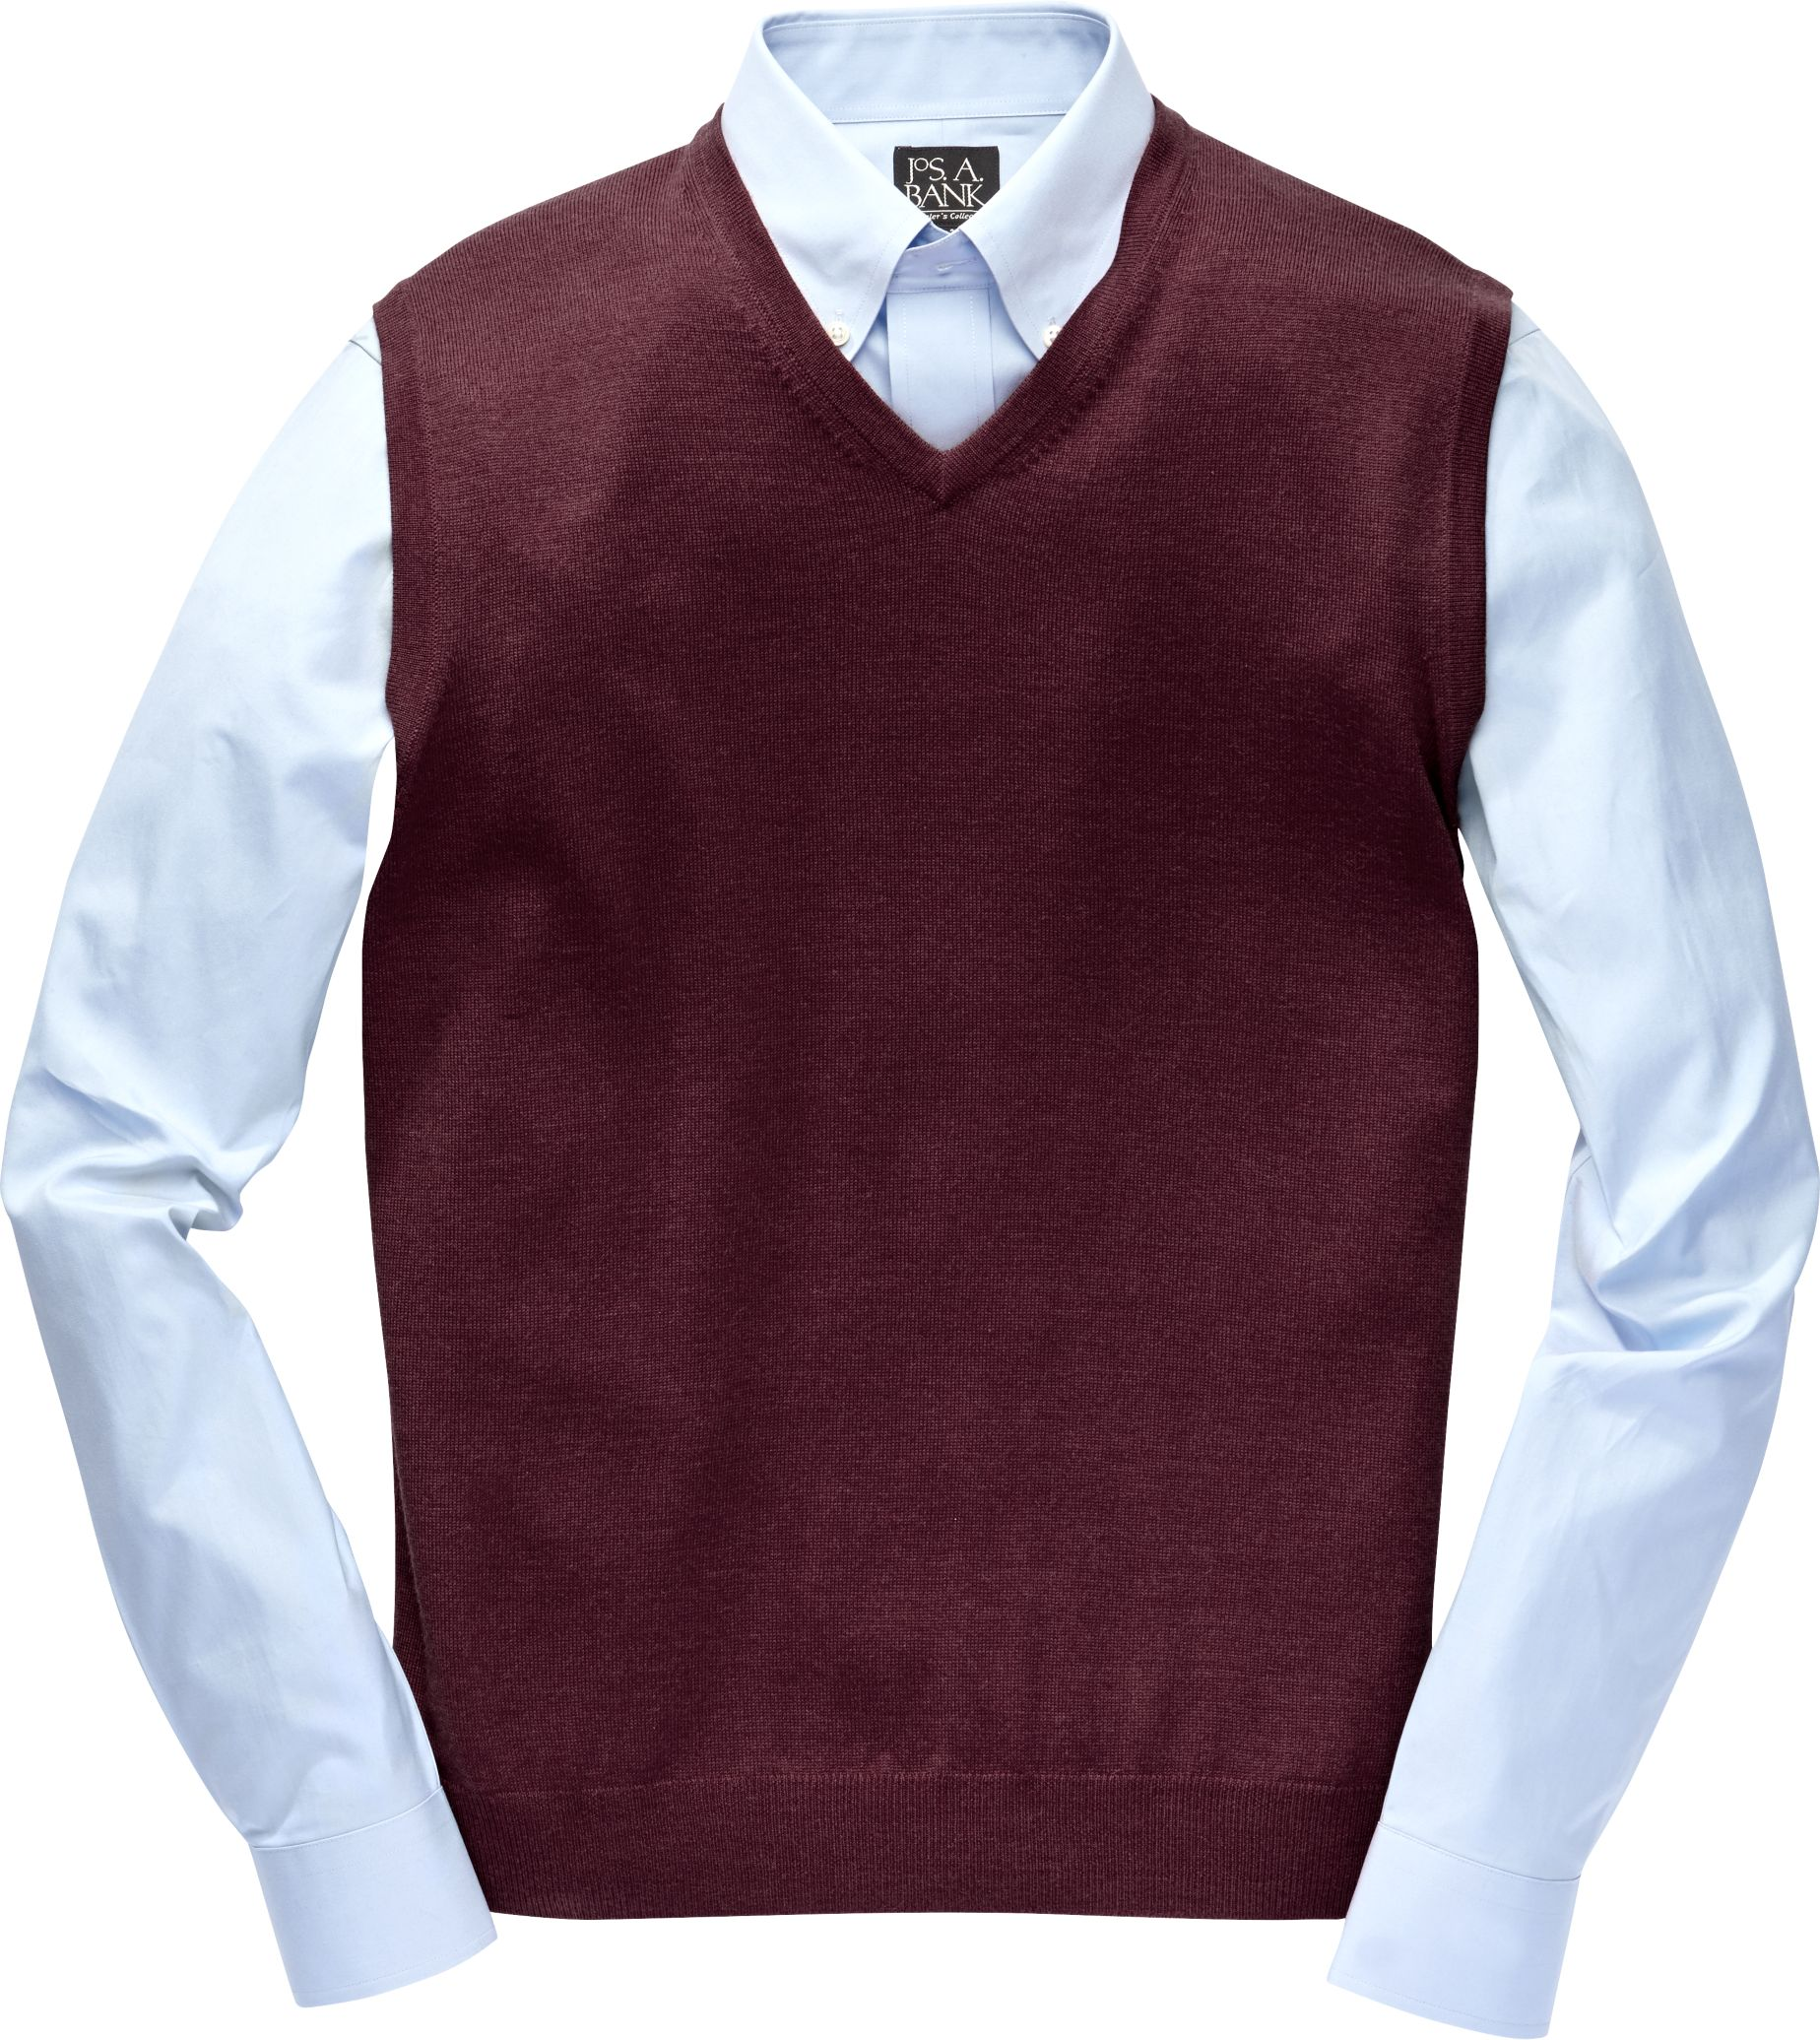 Merino Wool Sweaters, Cardigans & Vests | Men's Sweaters | JoS. A ...